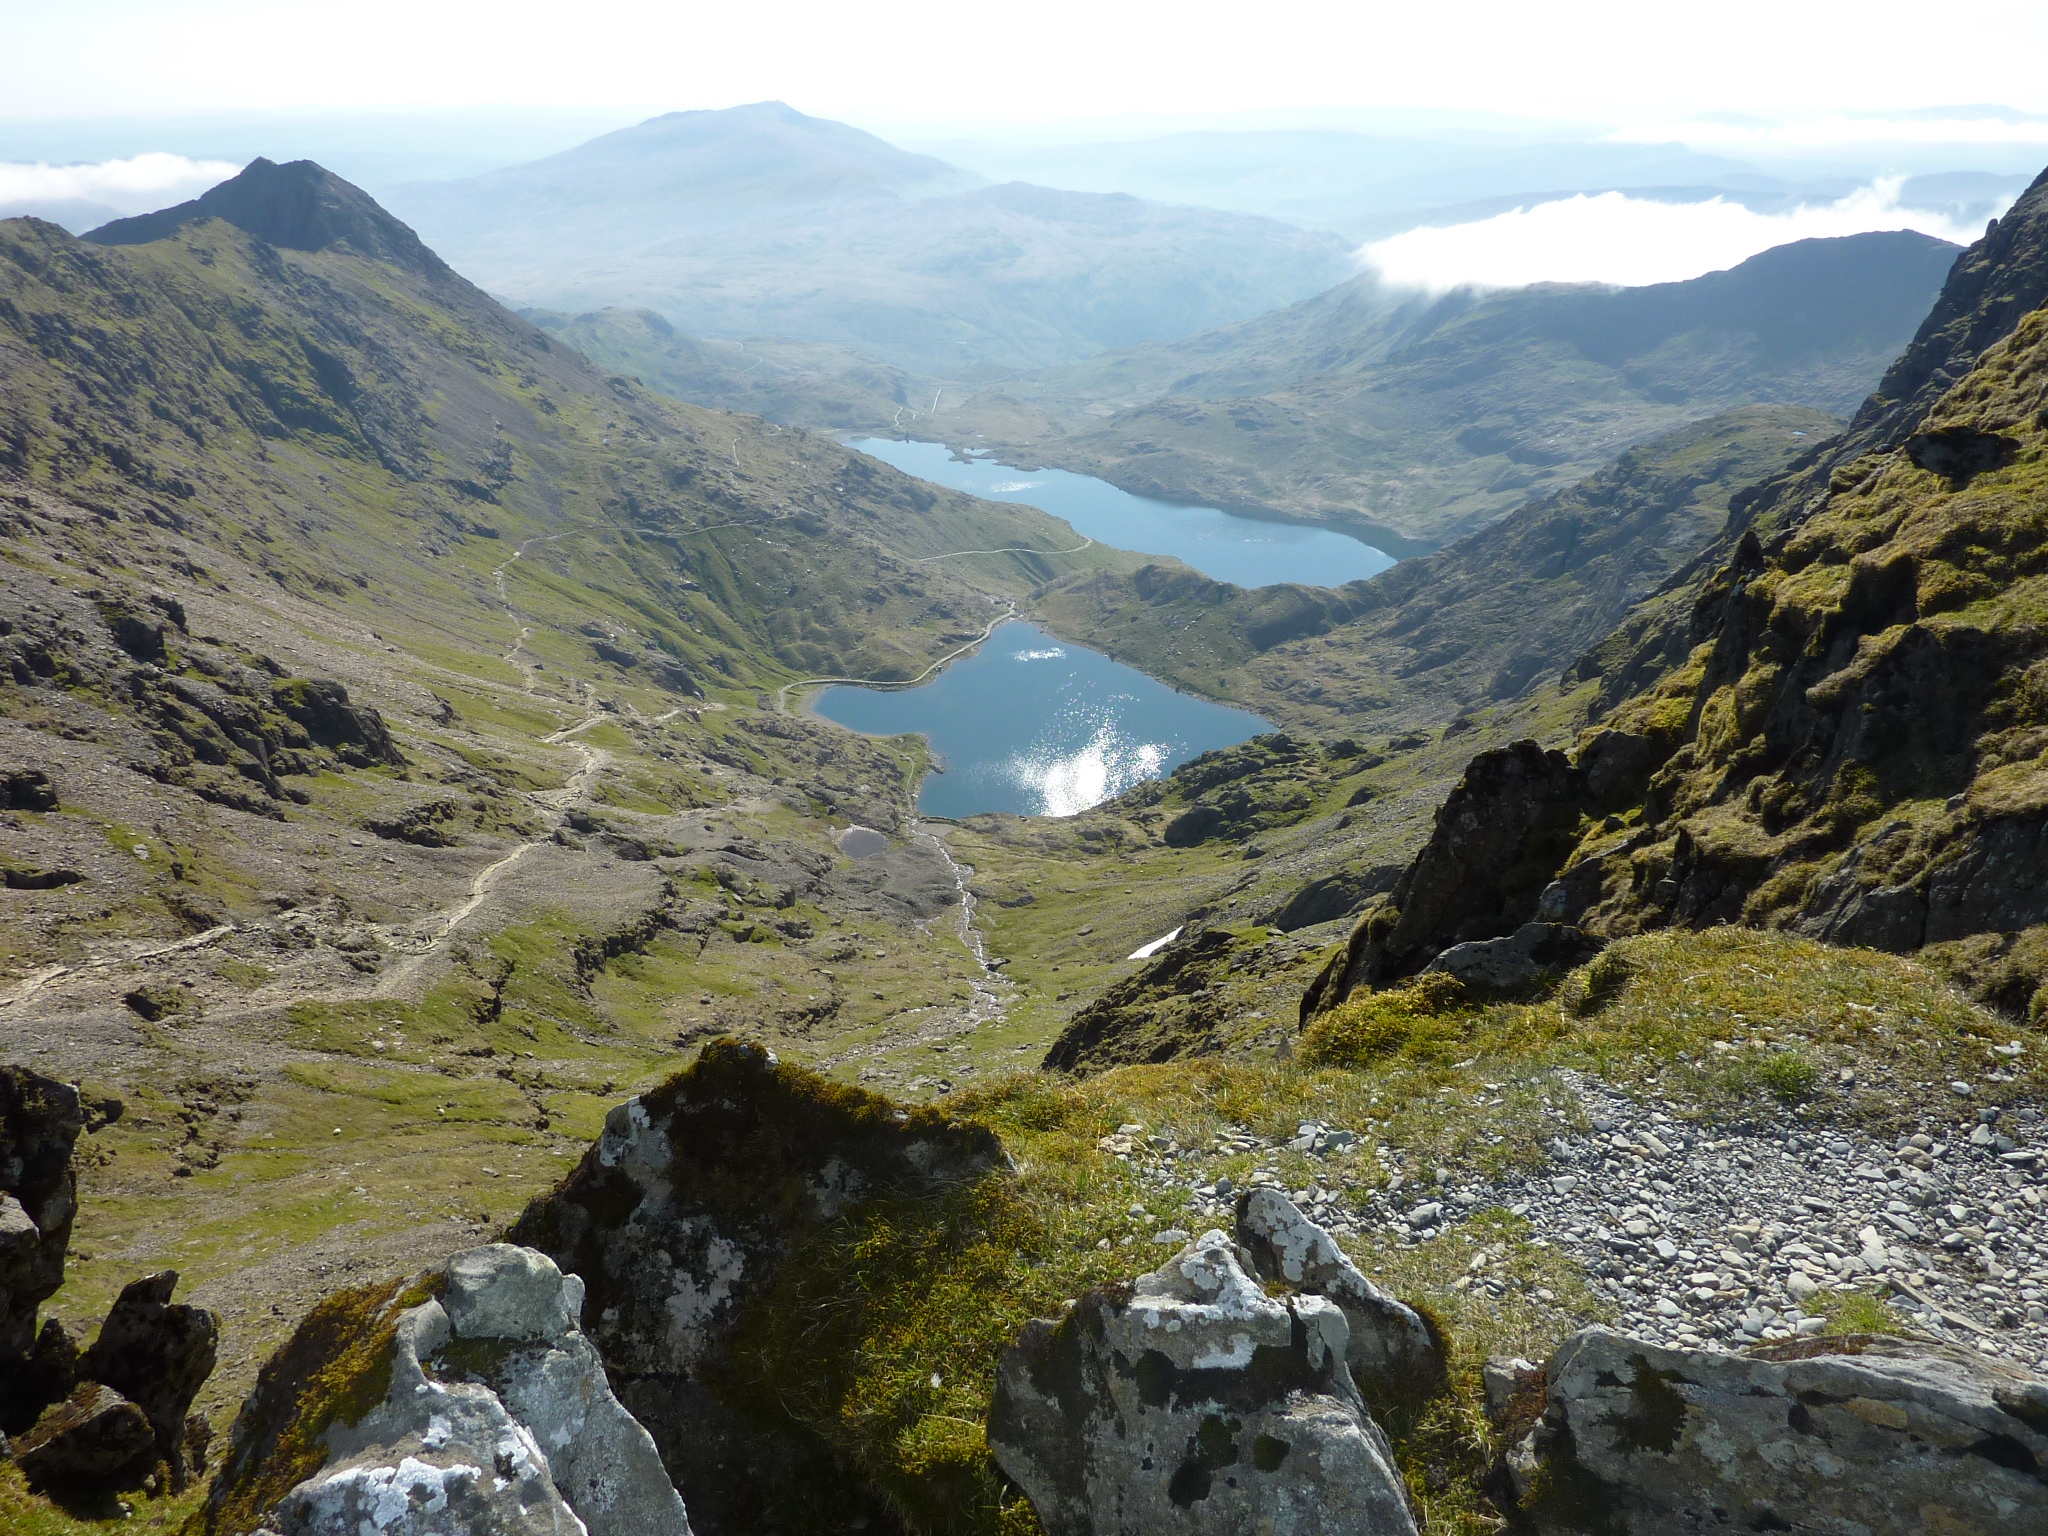 From Crib Goch